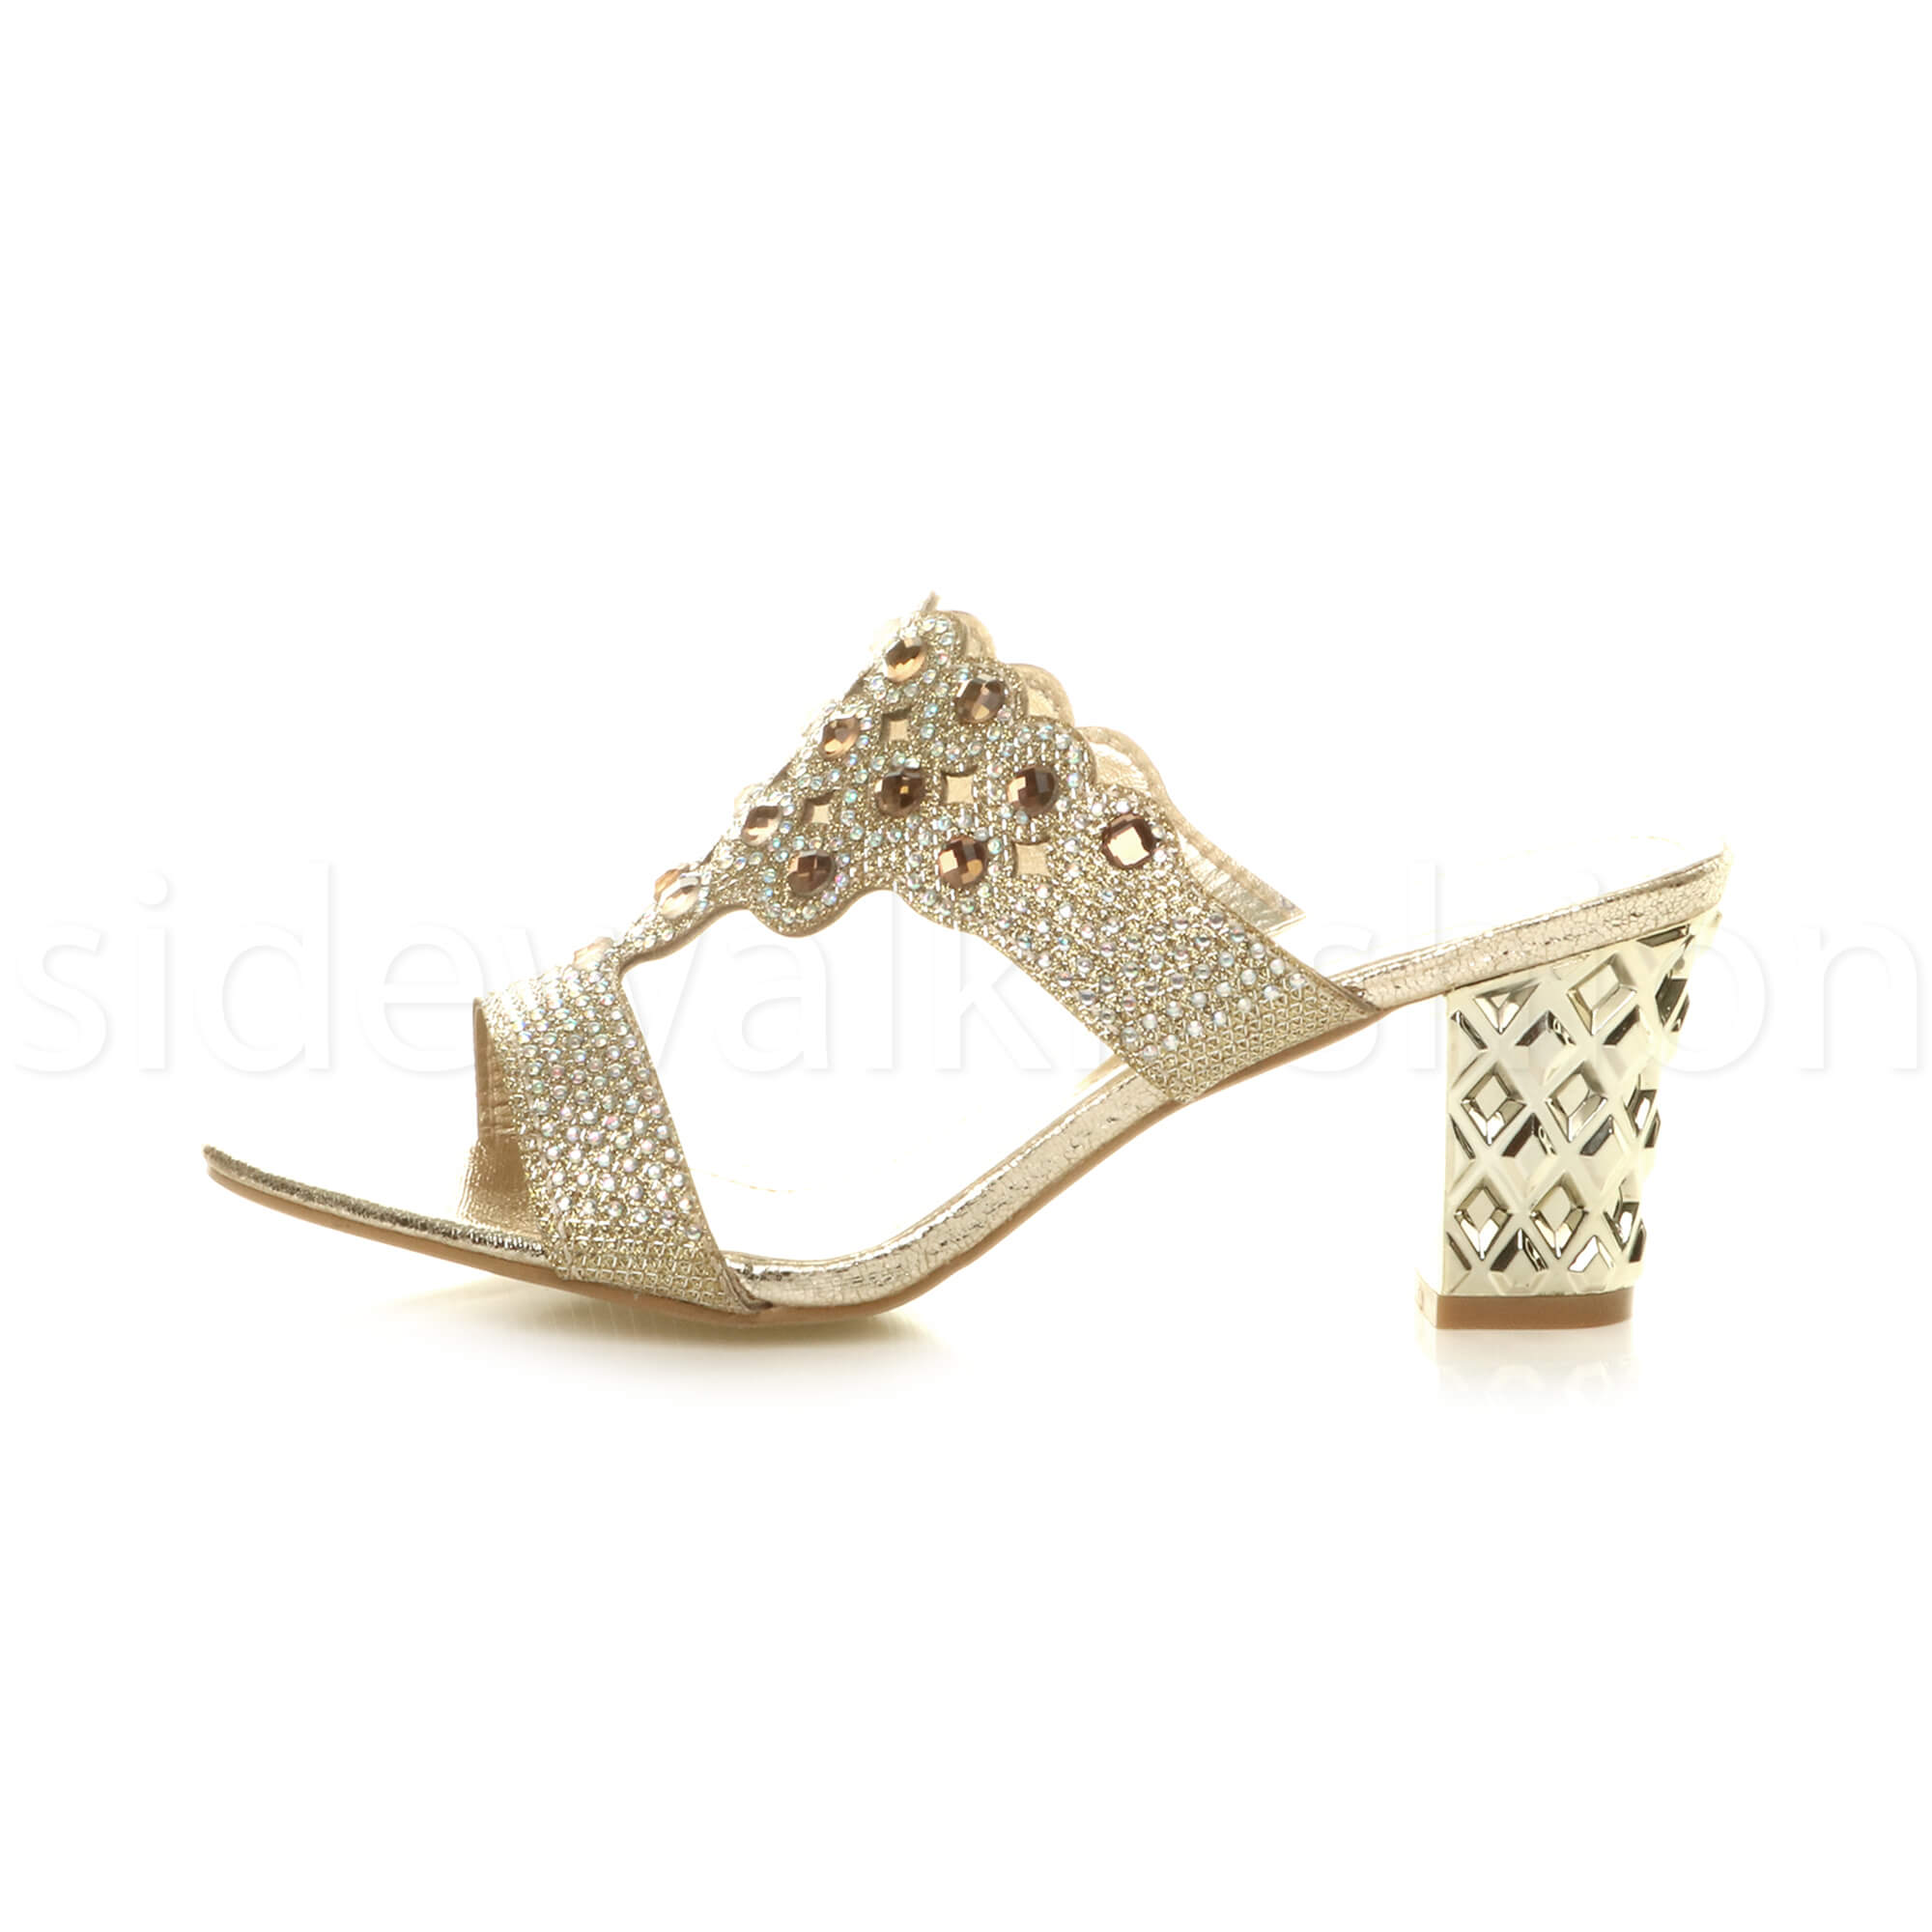 Womens-ladies-mid-heel-party-diamante-slip-on-strappy-mules-sandals-shoes-size thumbnail 8